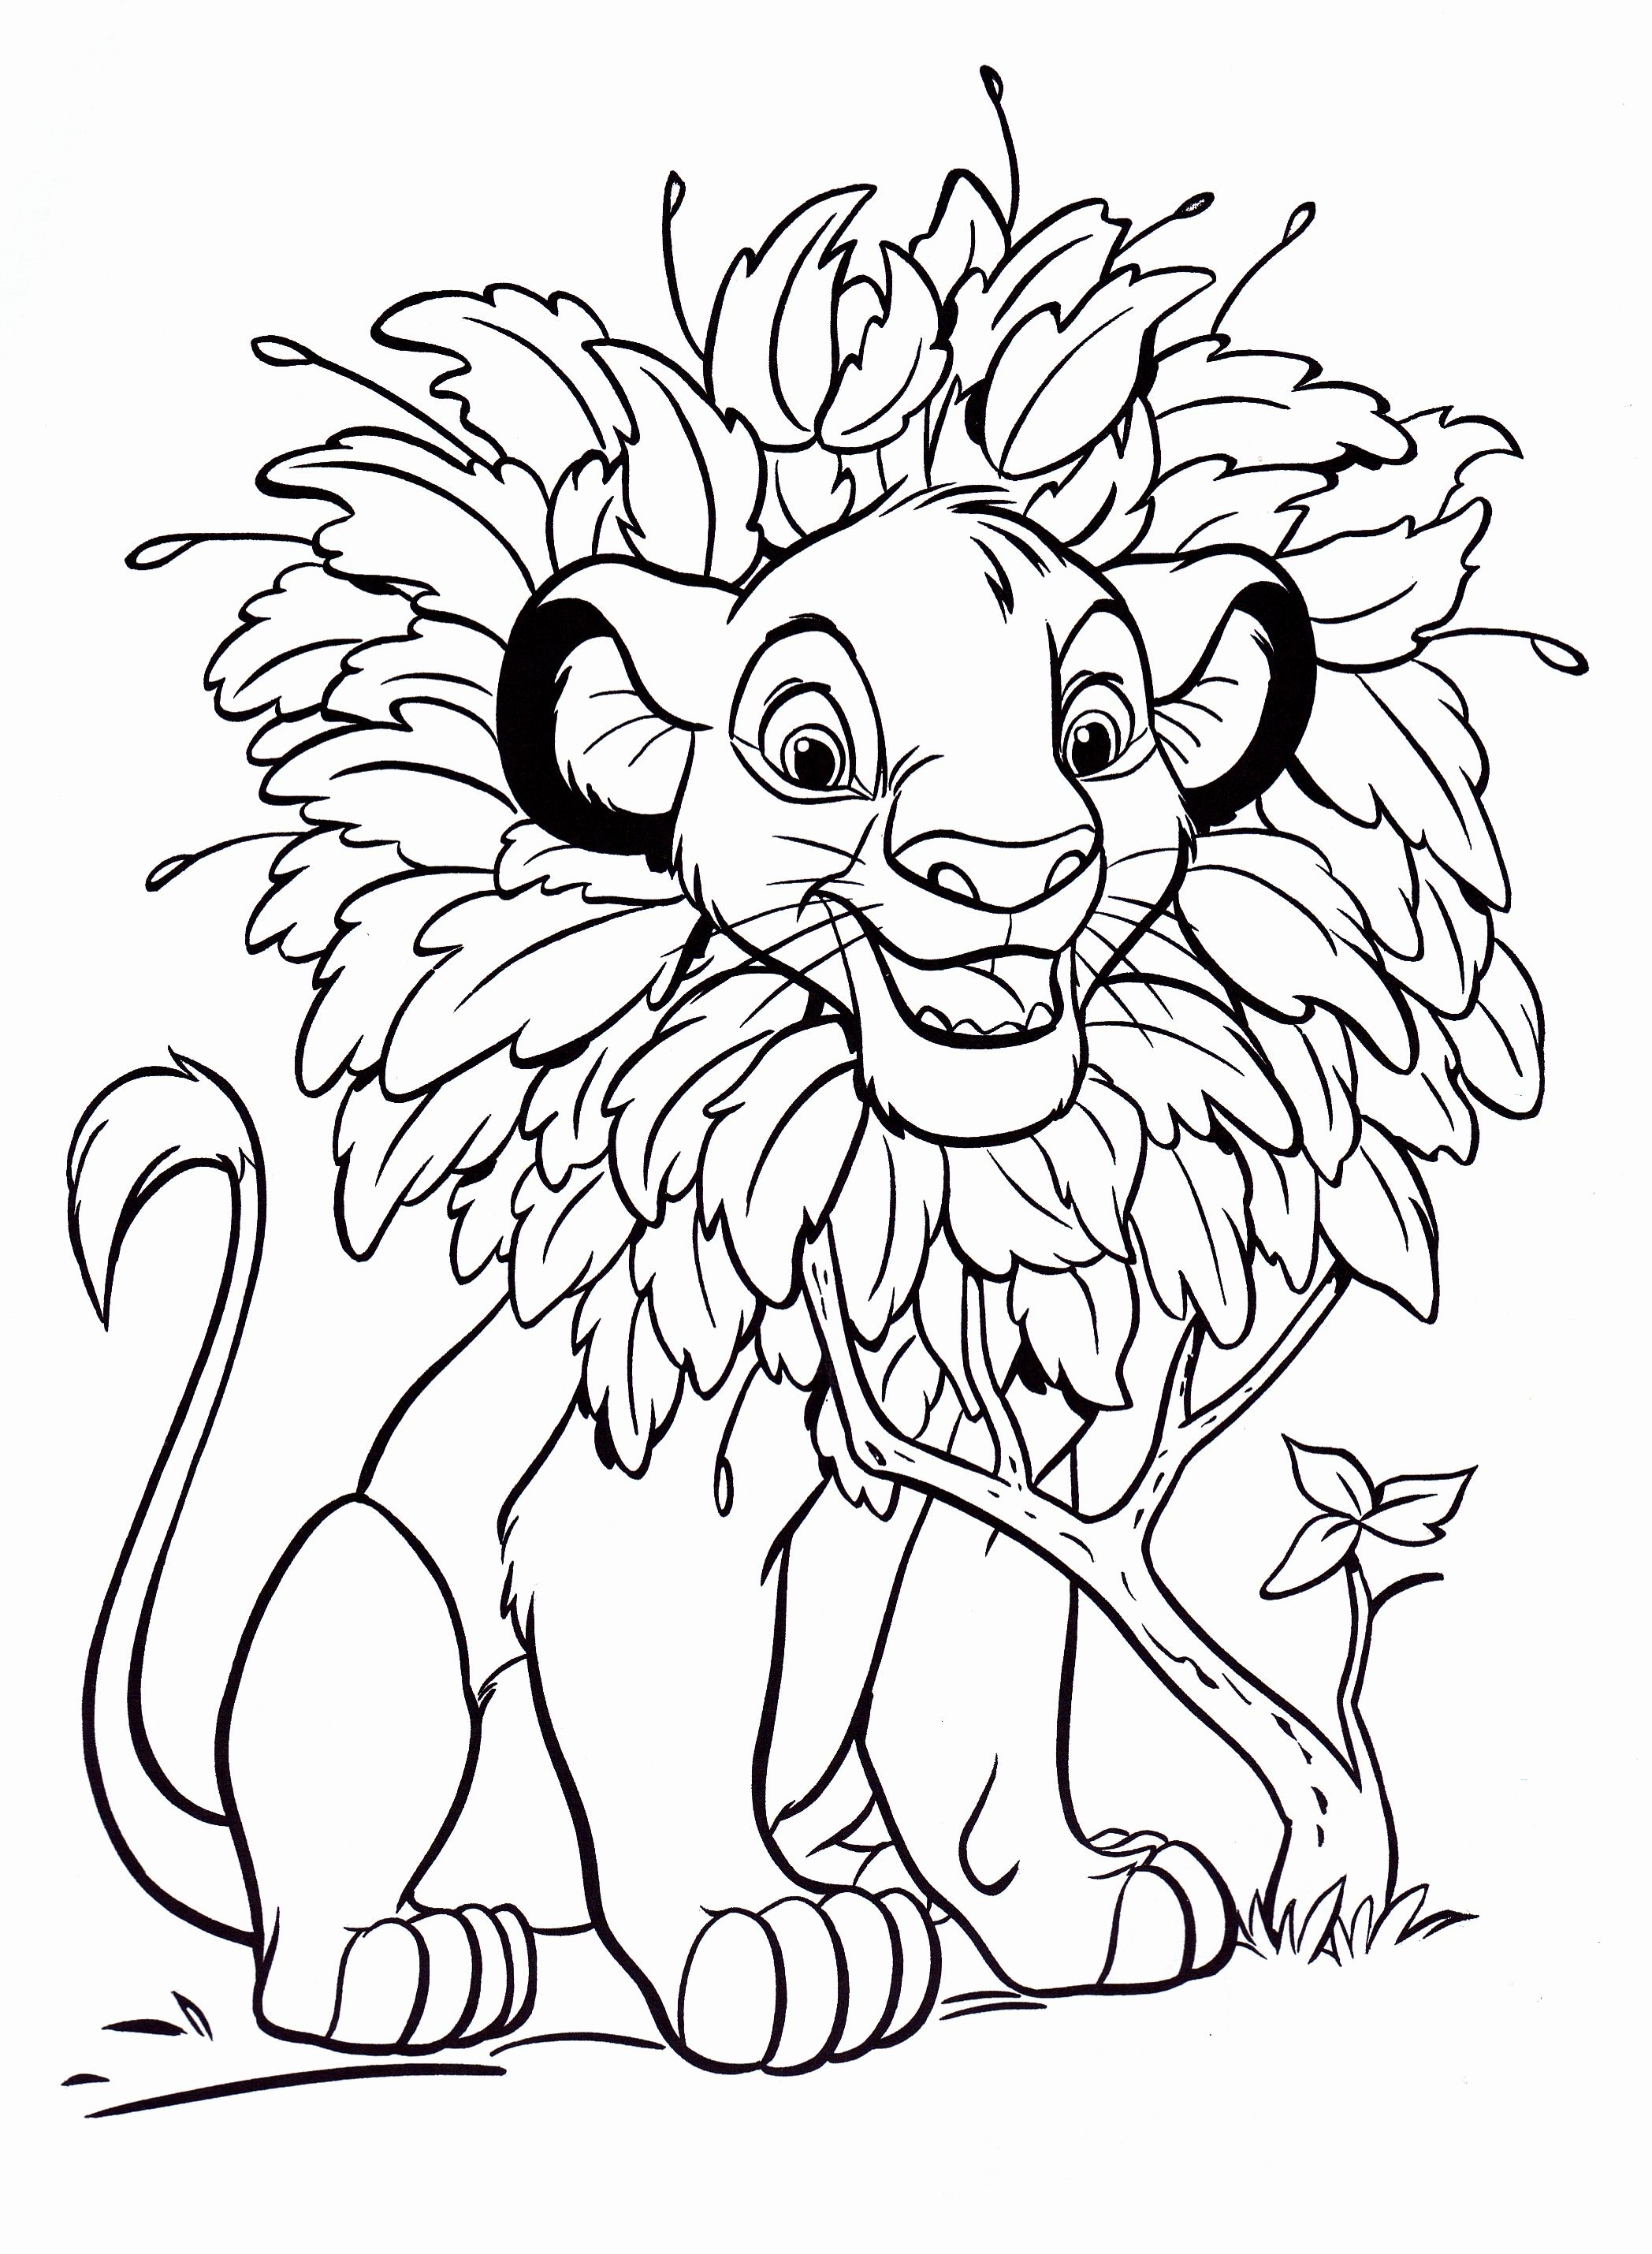 Disney princess coloring vanity case - The Lion King Coloring Kids Coloring Page